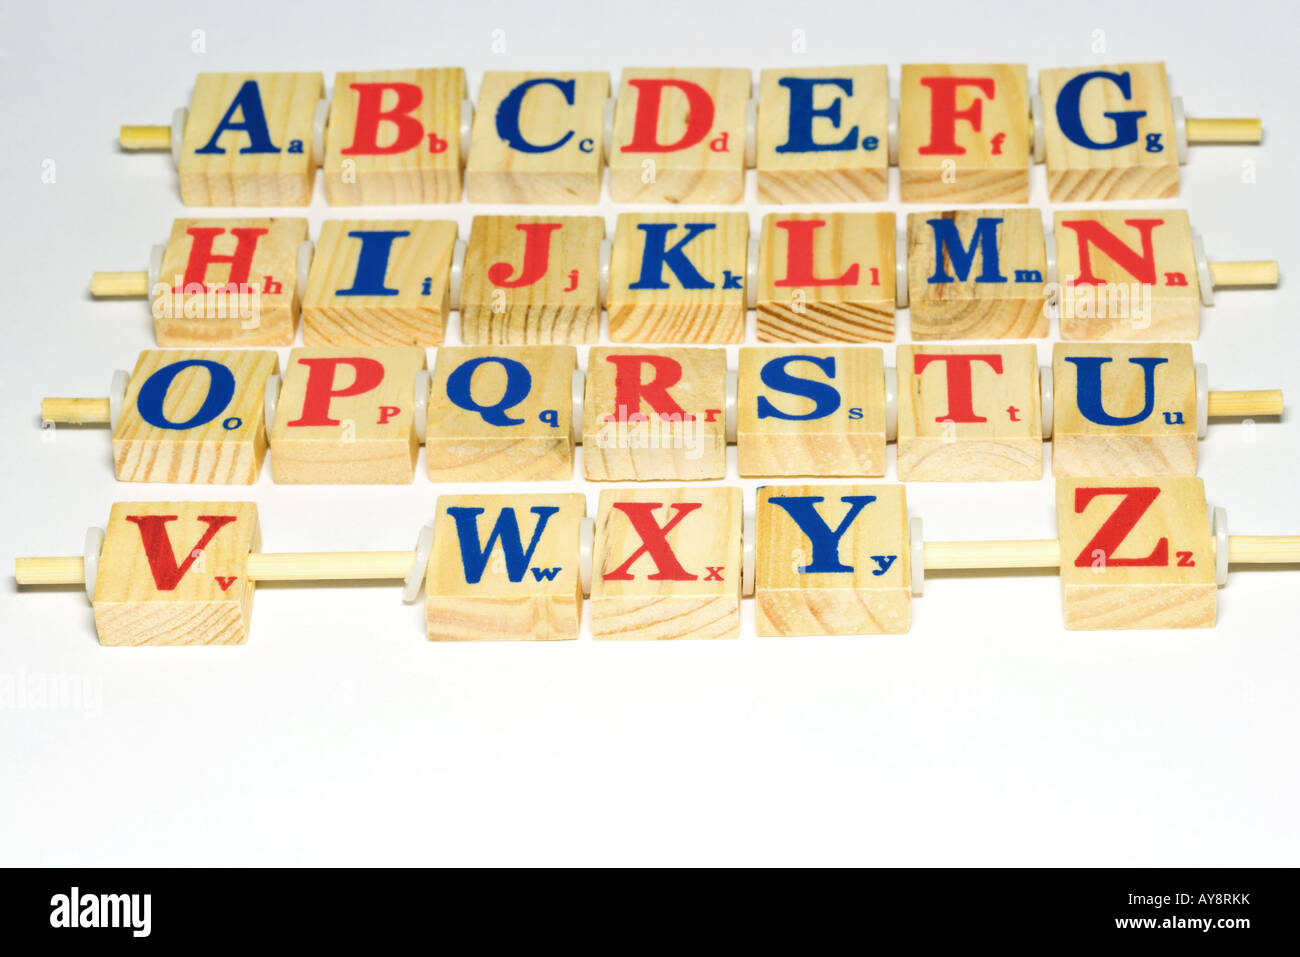 Wooden alphabet blocks, close-up Photo Stock